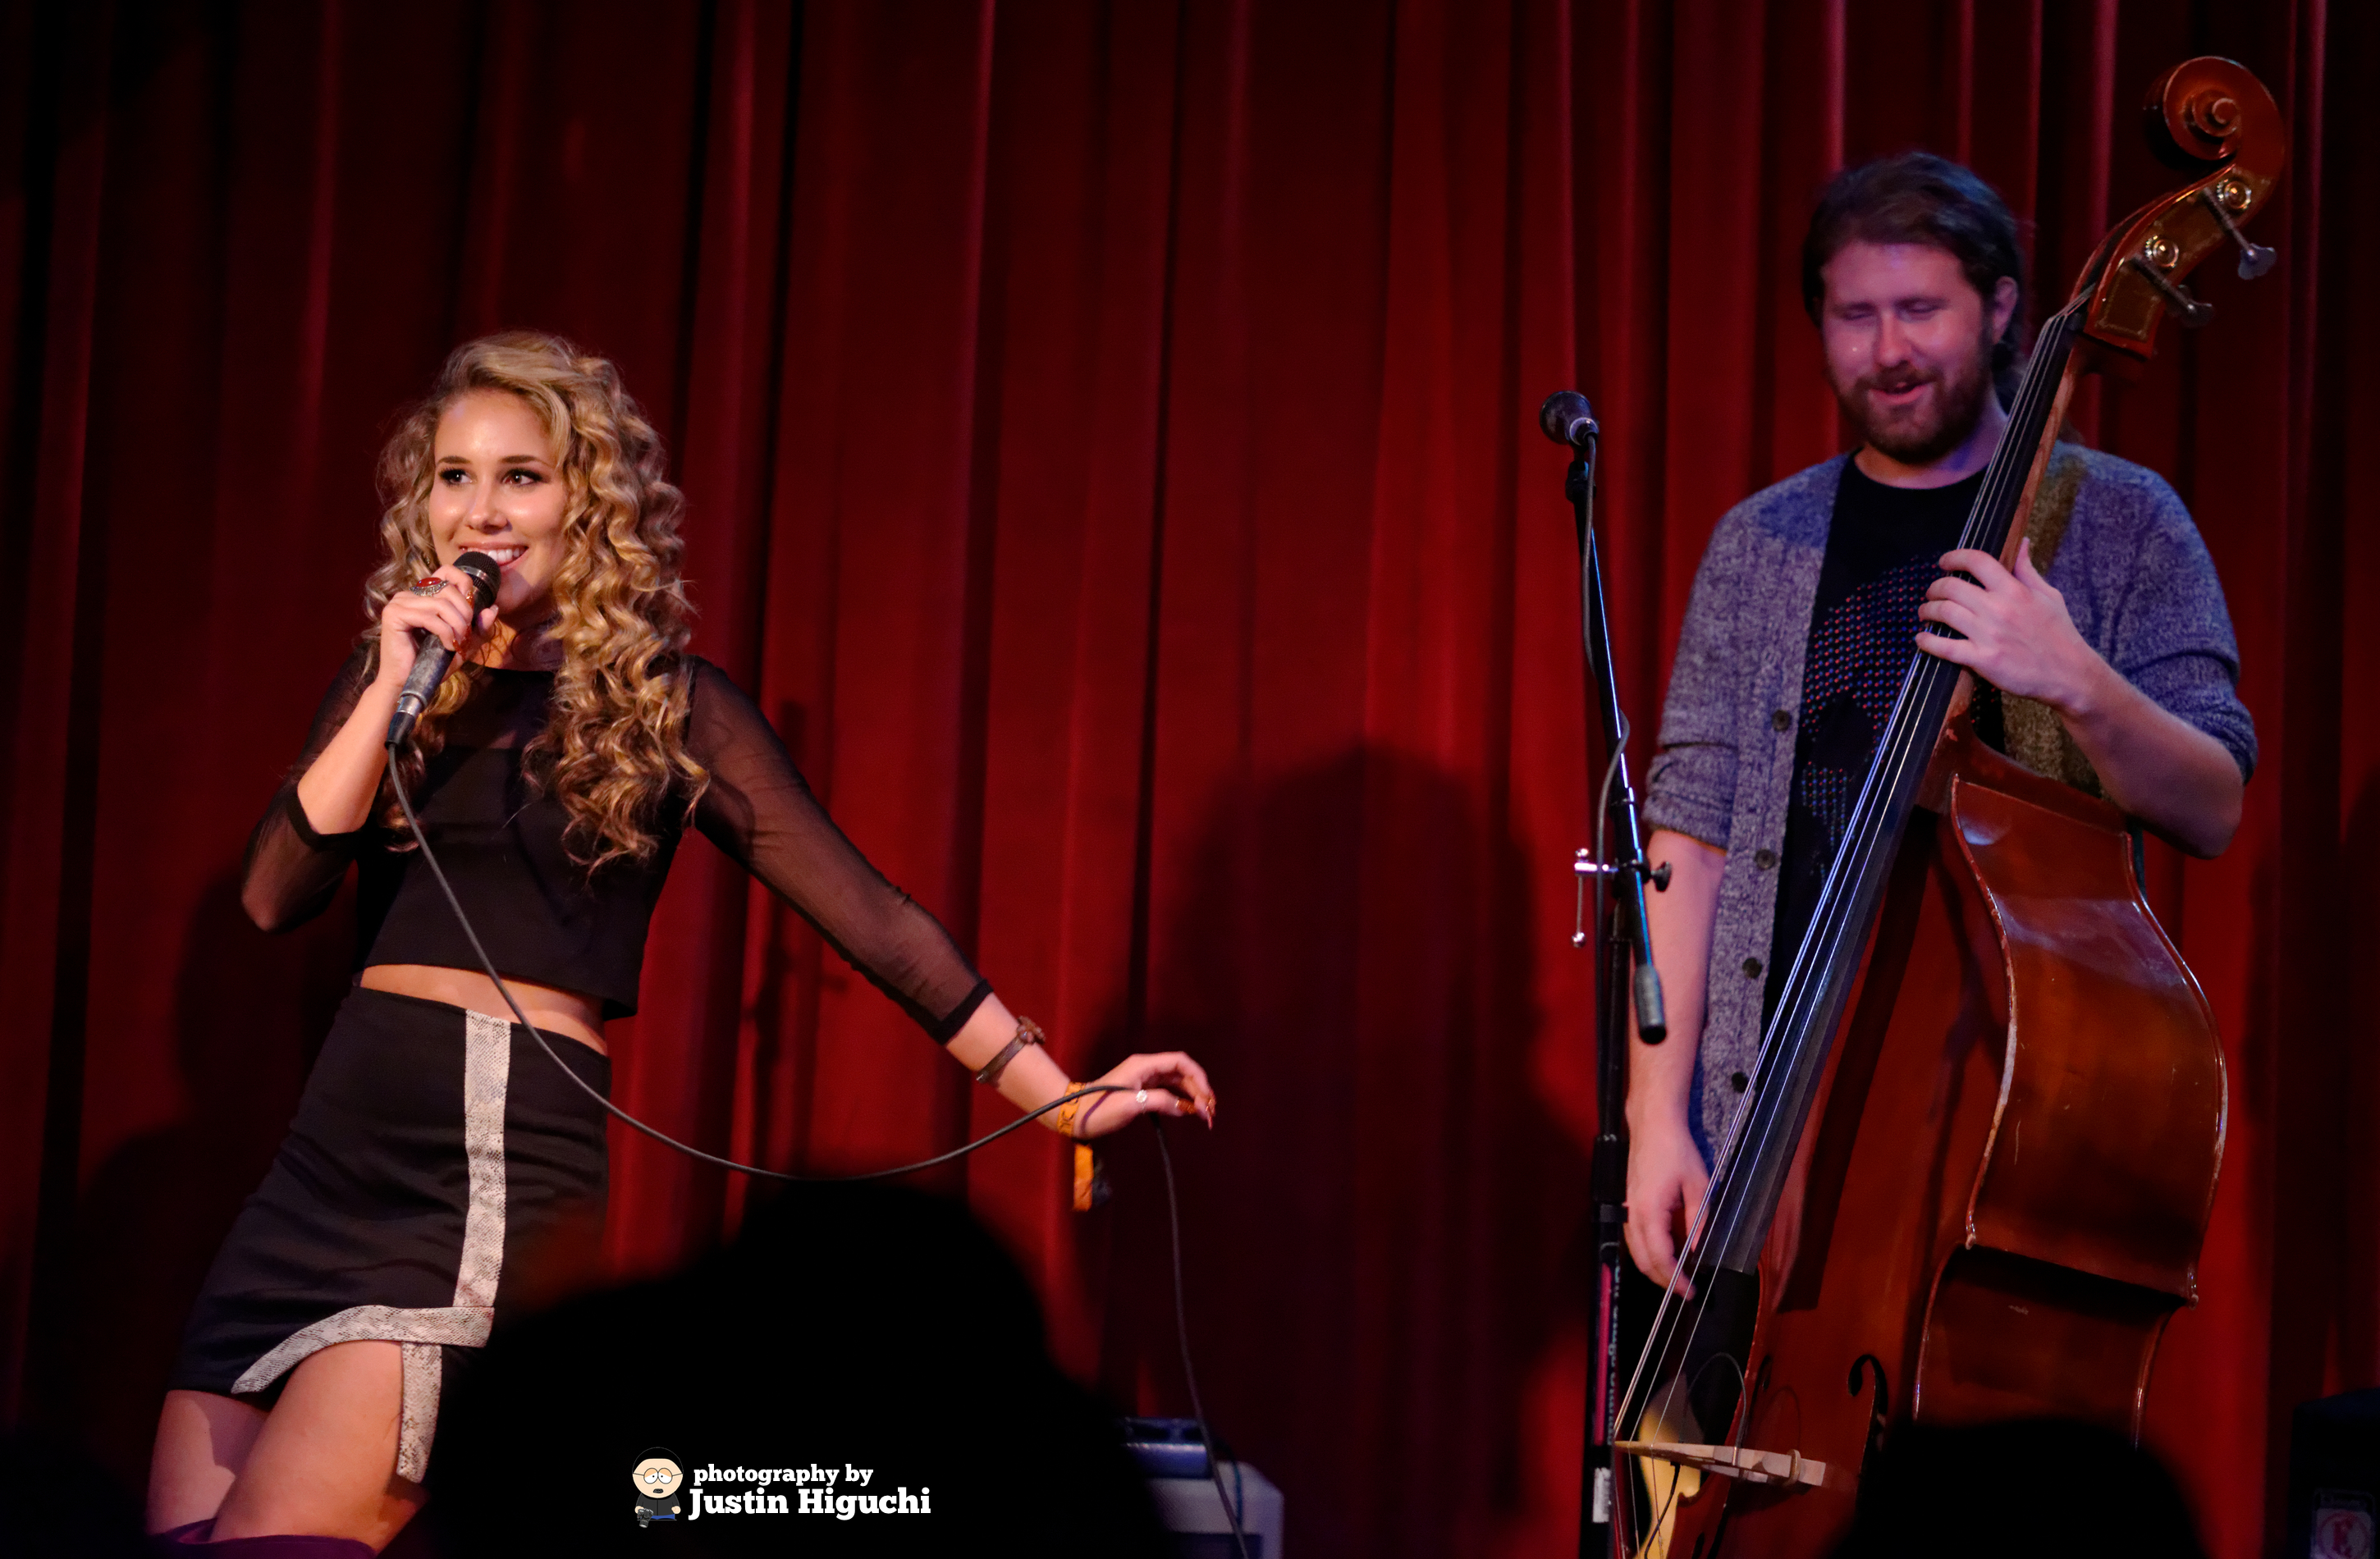 Casey Abrams ja Haley Reinhart dating 2013